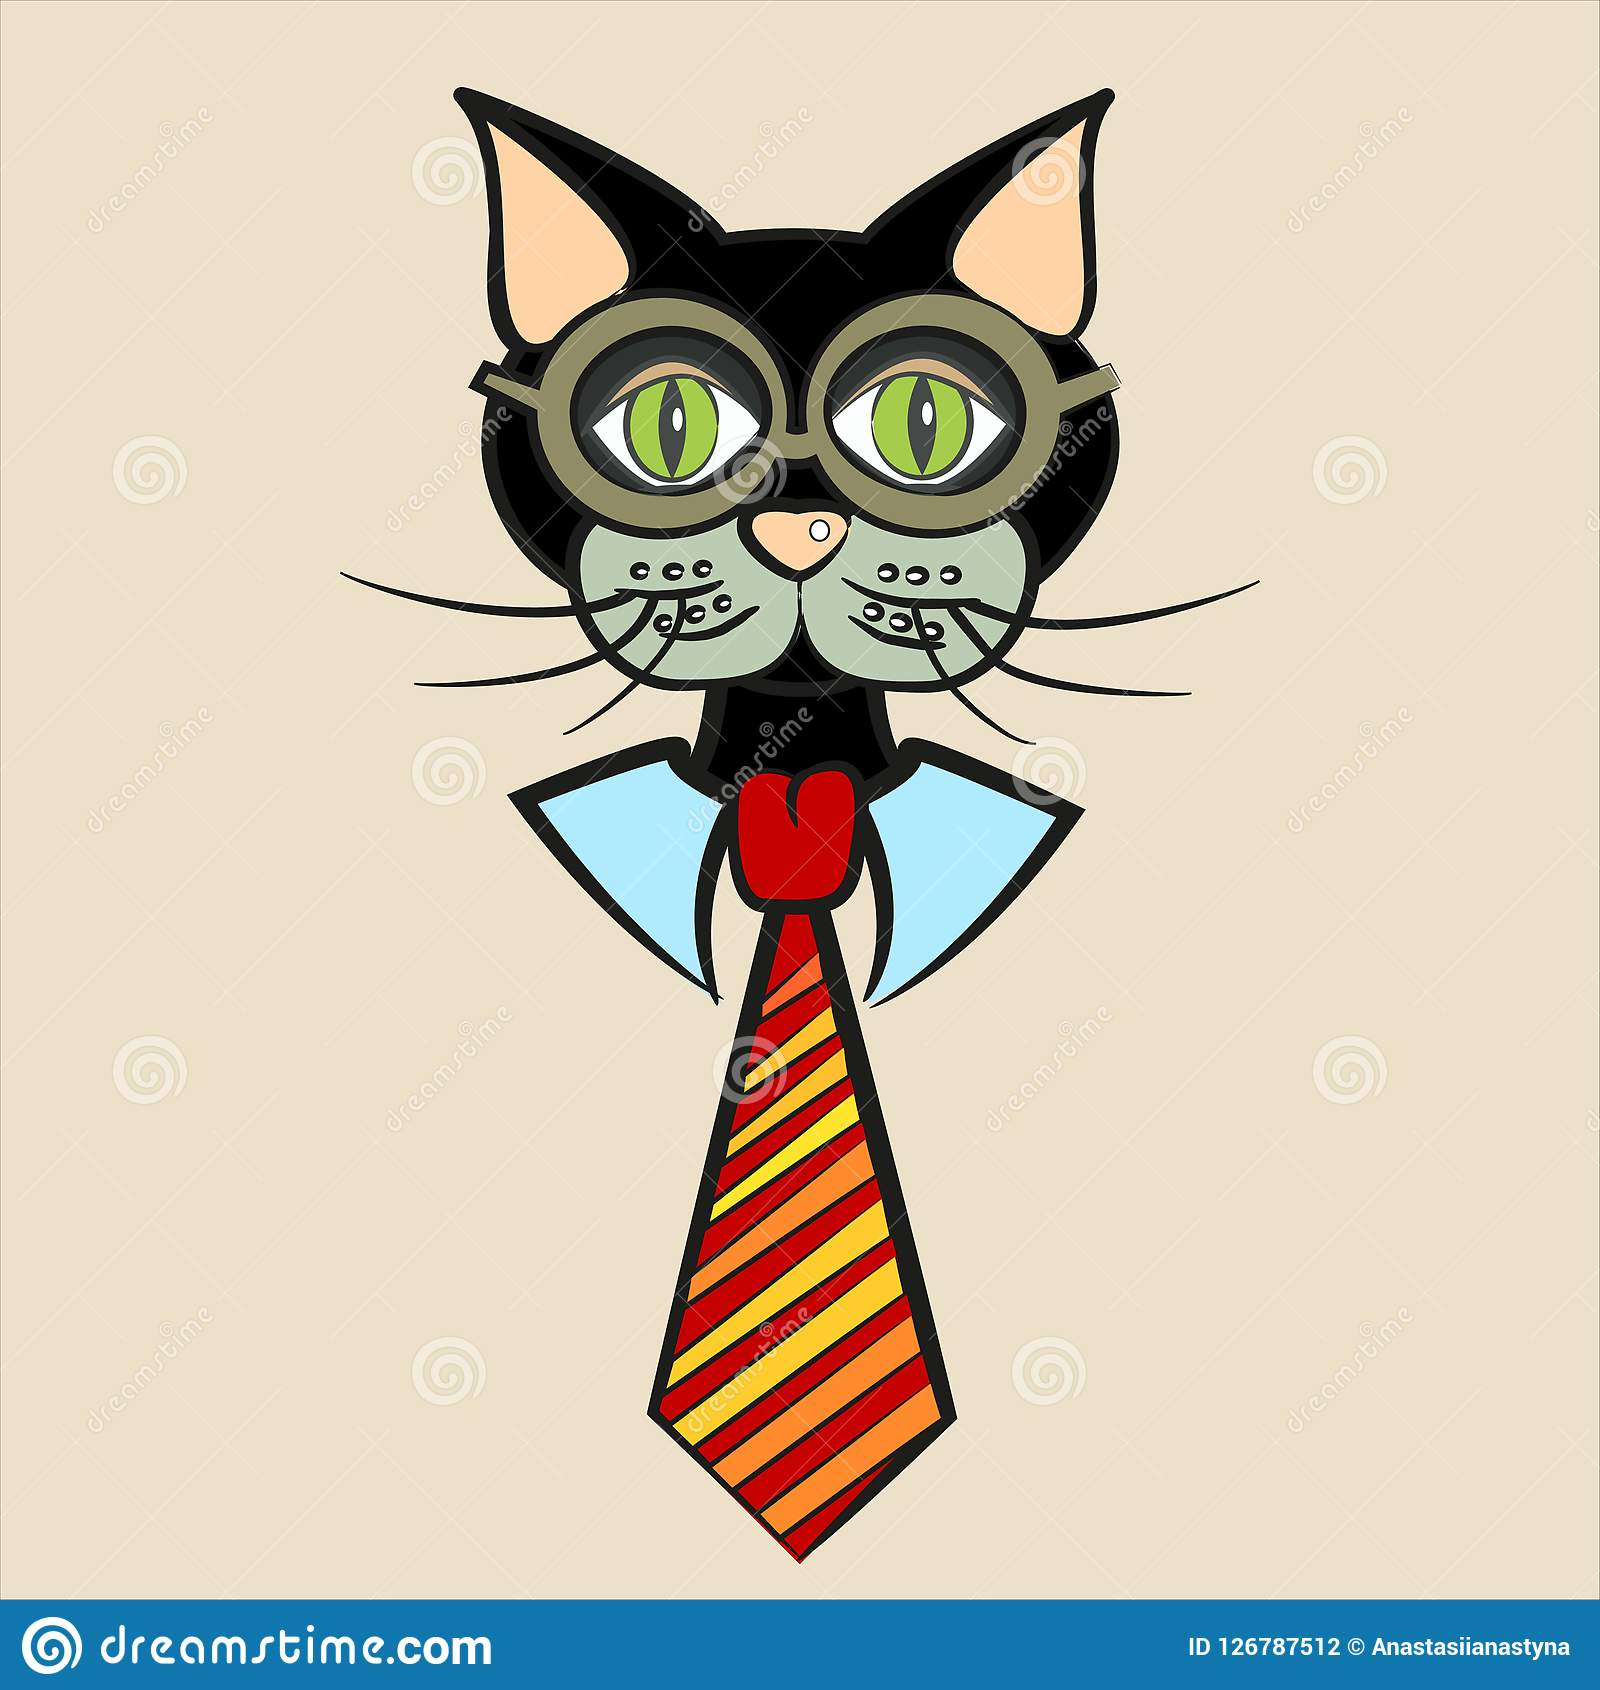 667c70dbdbcc Black Cat In Glasses, Shirt And Tie Stock Vector - Illustration of ...